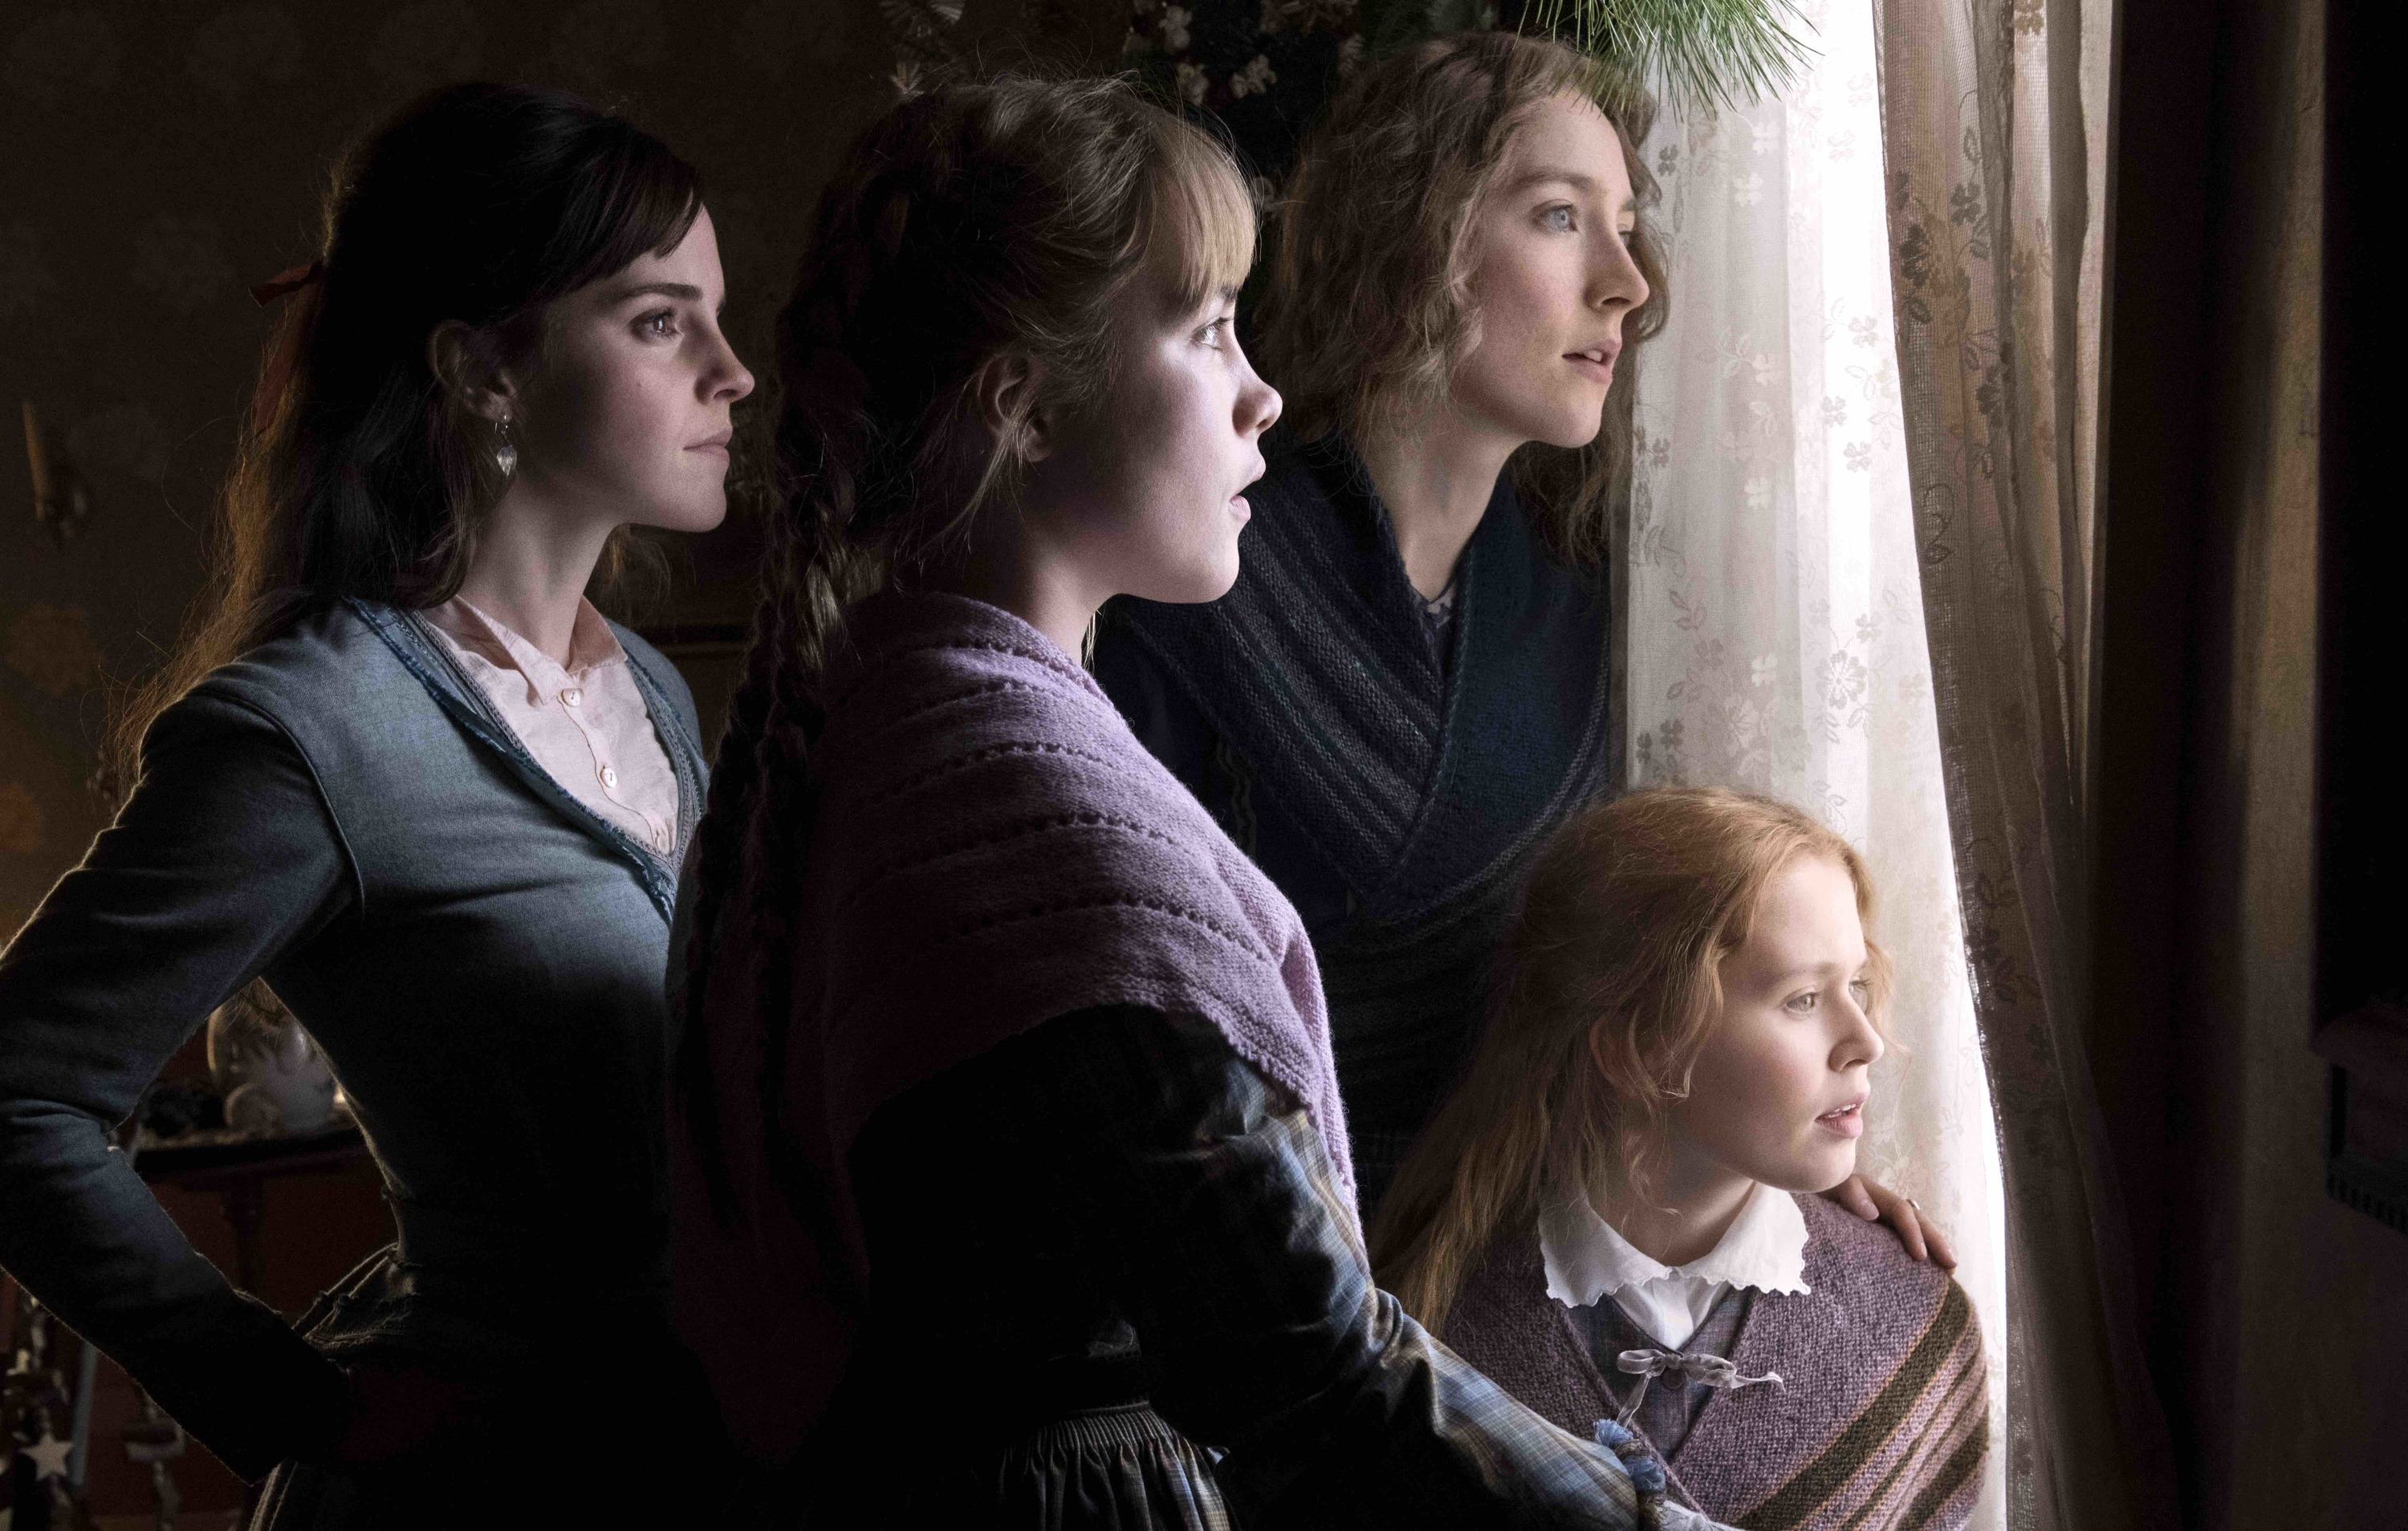 Little Women review: Gerwig makes classic her own